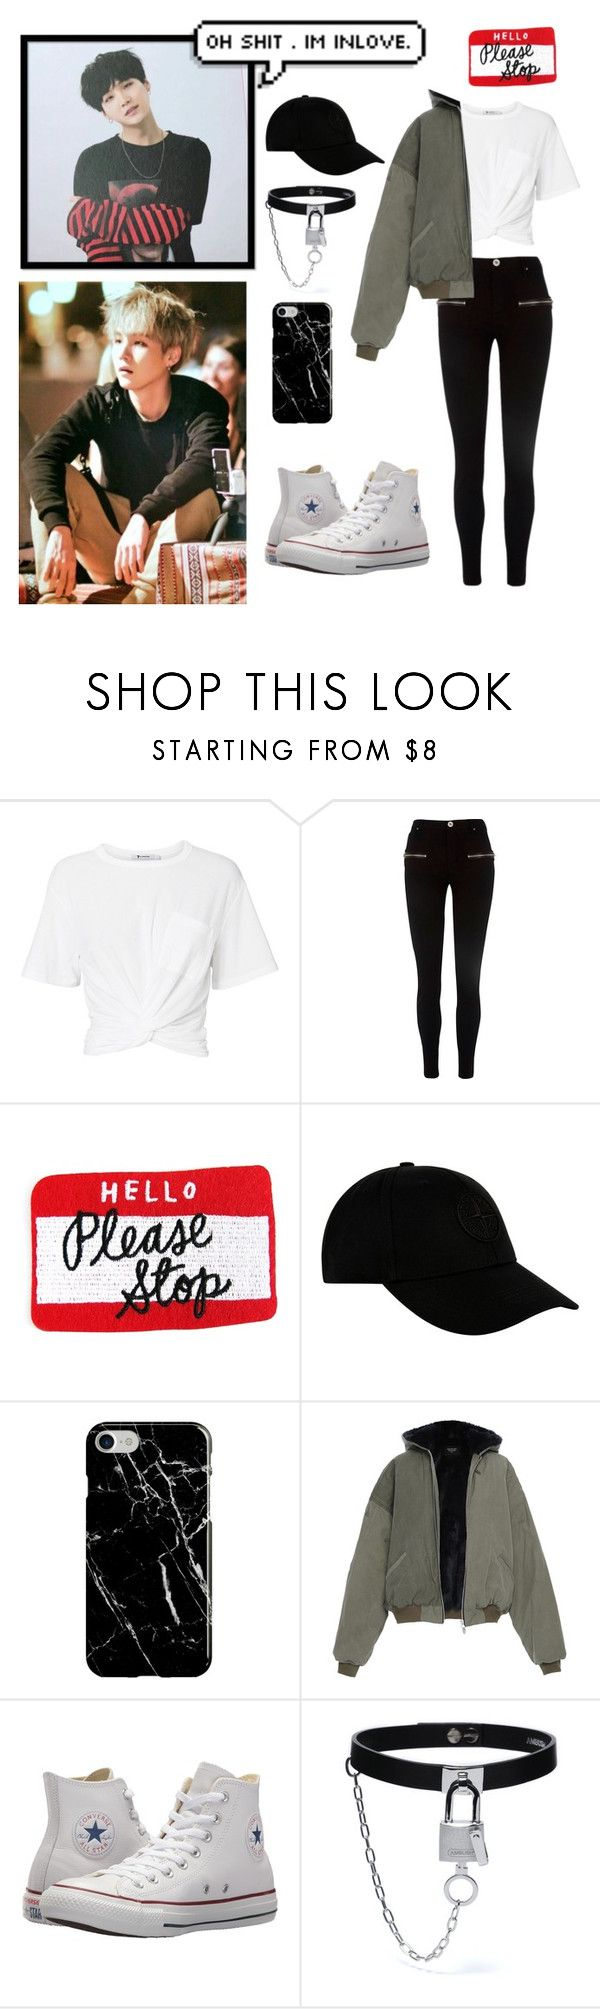 """""""Suga ~ So Sleepy"""" by amongthestars7 ❤ liked on Polyvore featuring T By Alexander Wang, River Island, STONE ISLAND, Recover and Converse"""